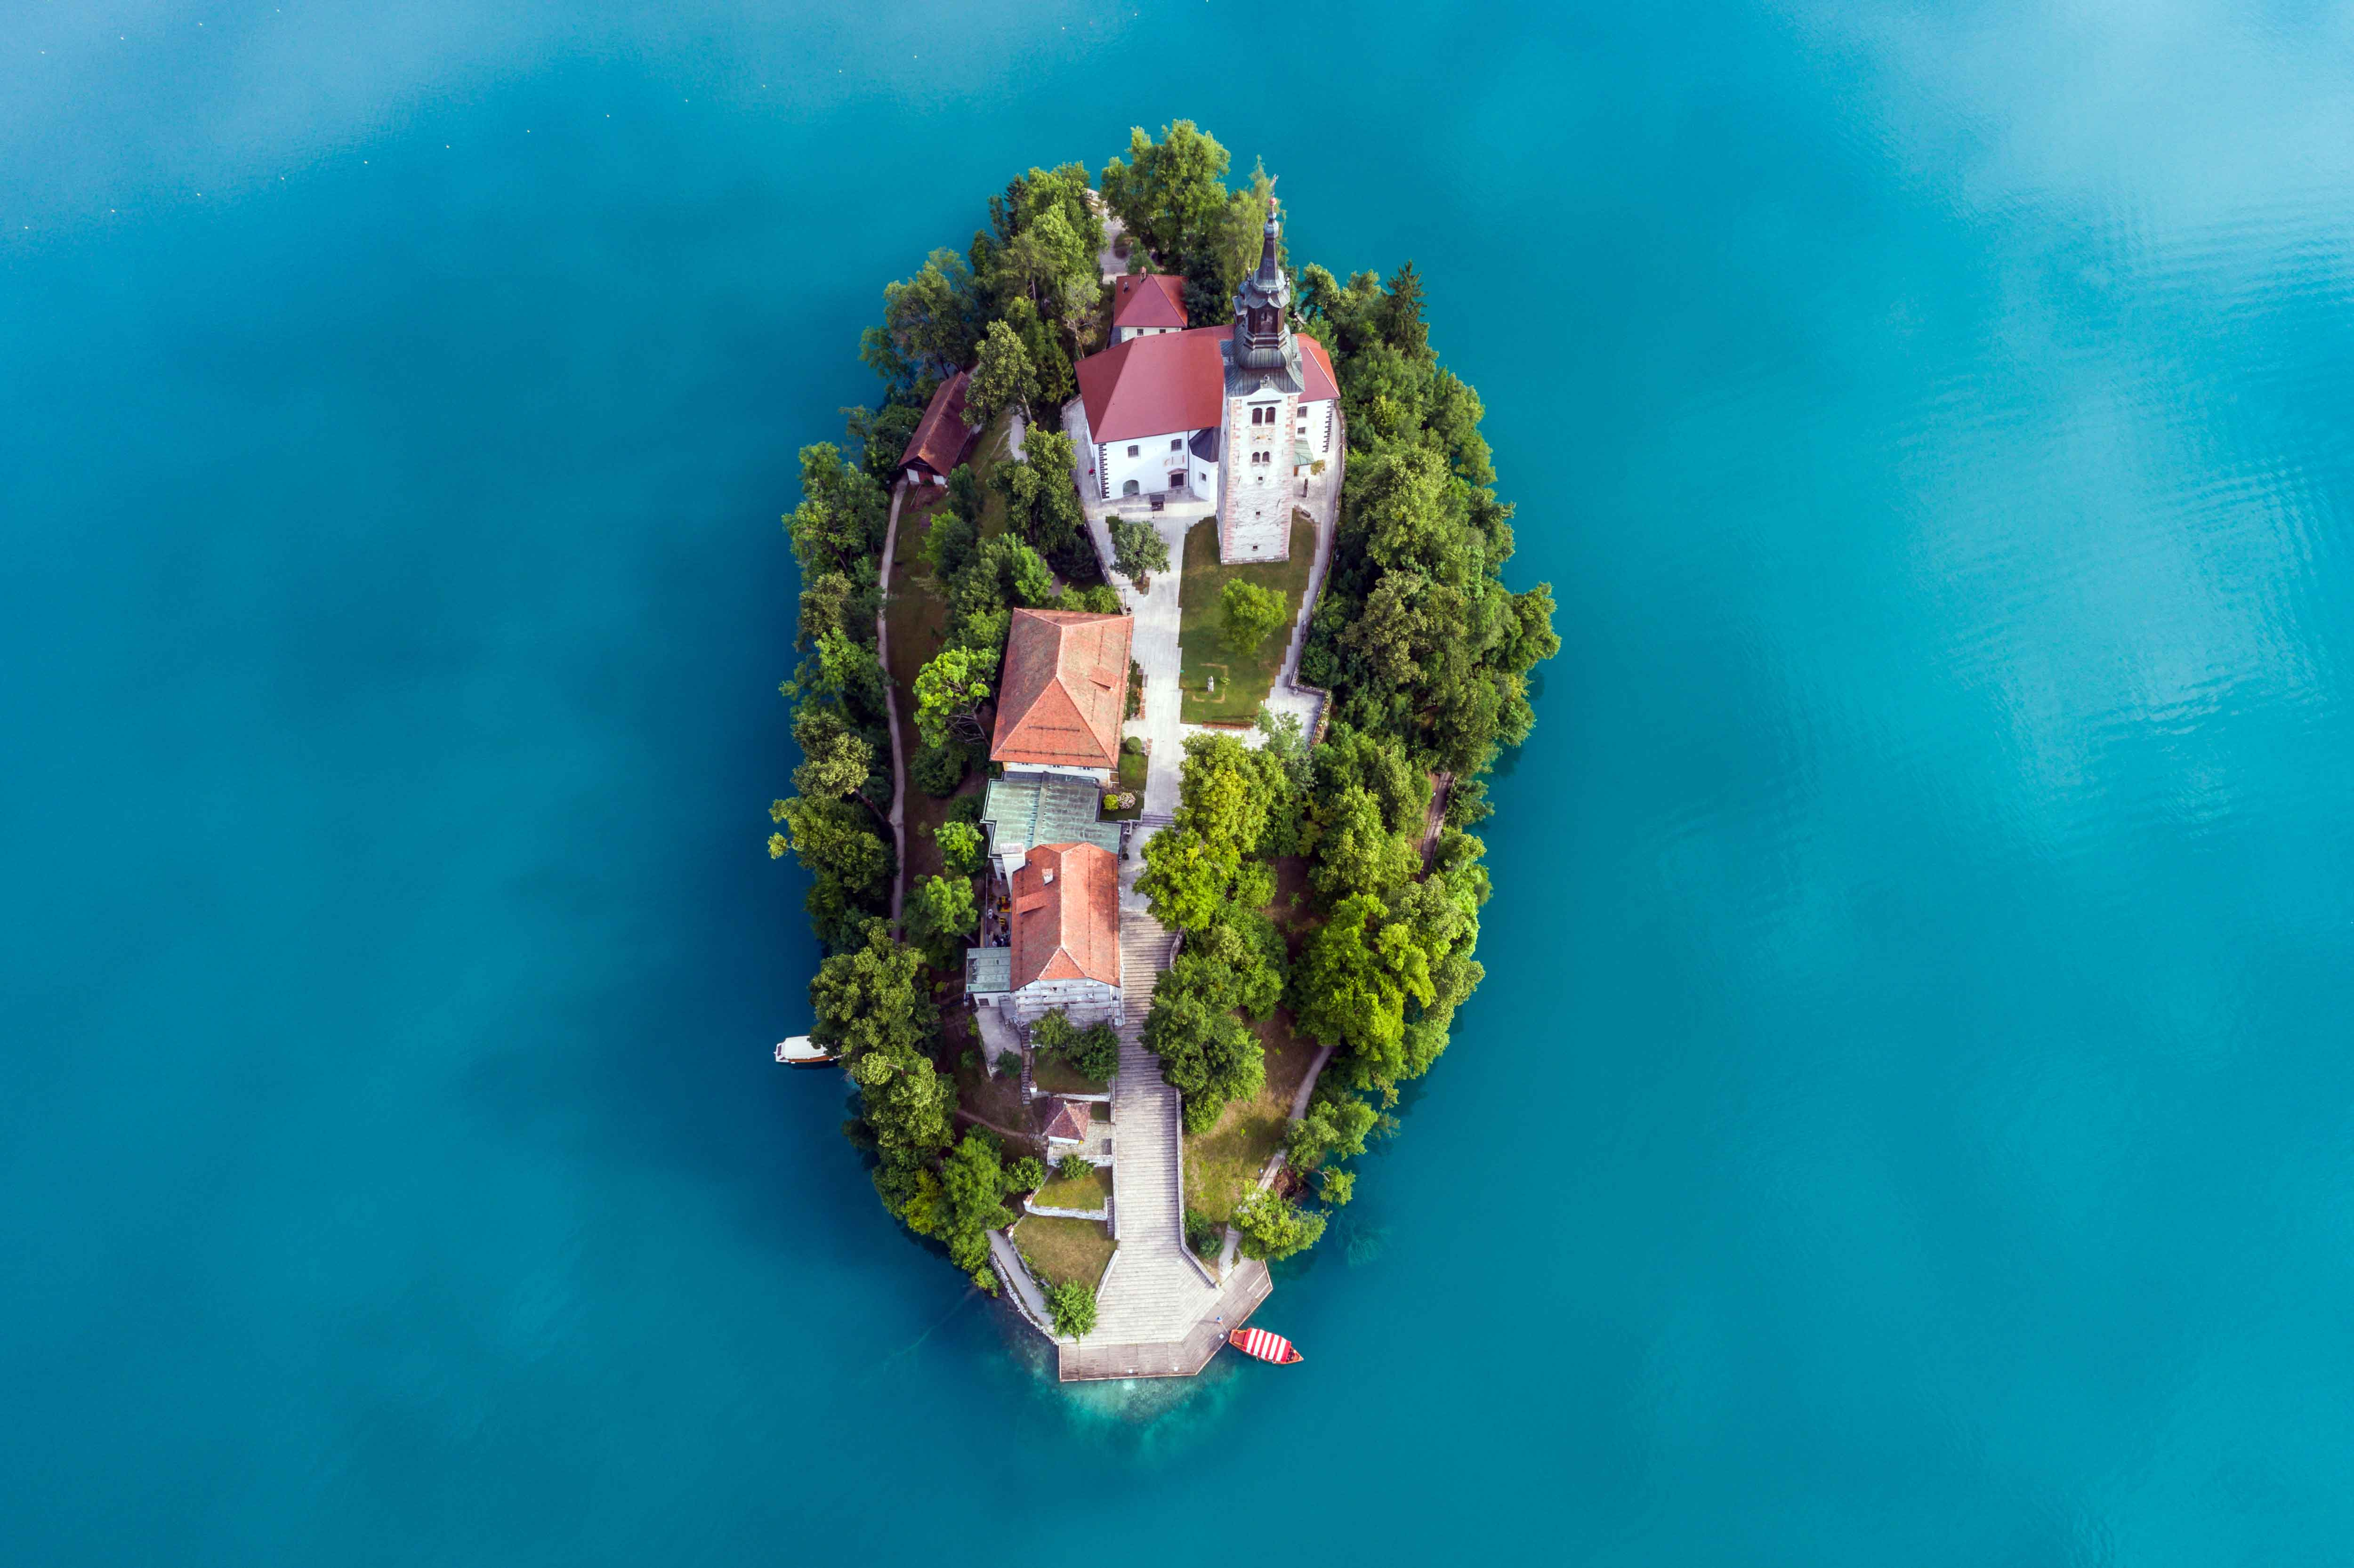 Aerial view of the Pilgrimage Church of the Assumption of Mary on Bled Island, Lake Bled, Slovenia